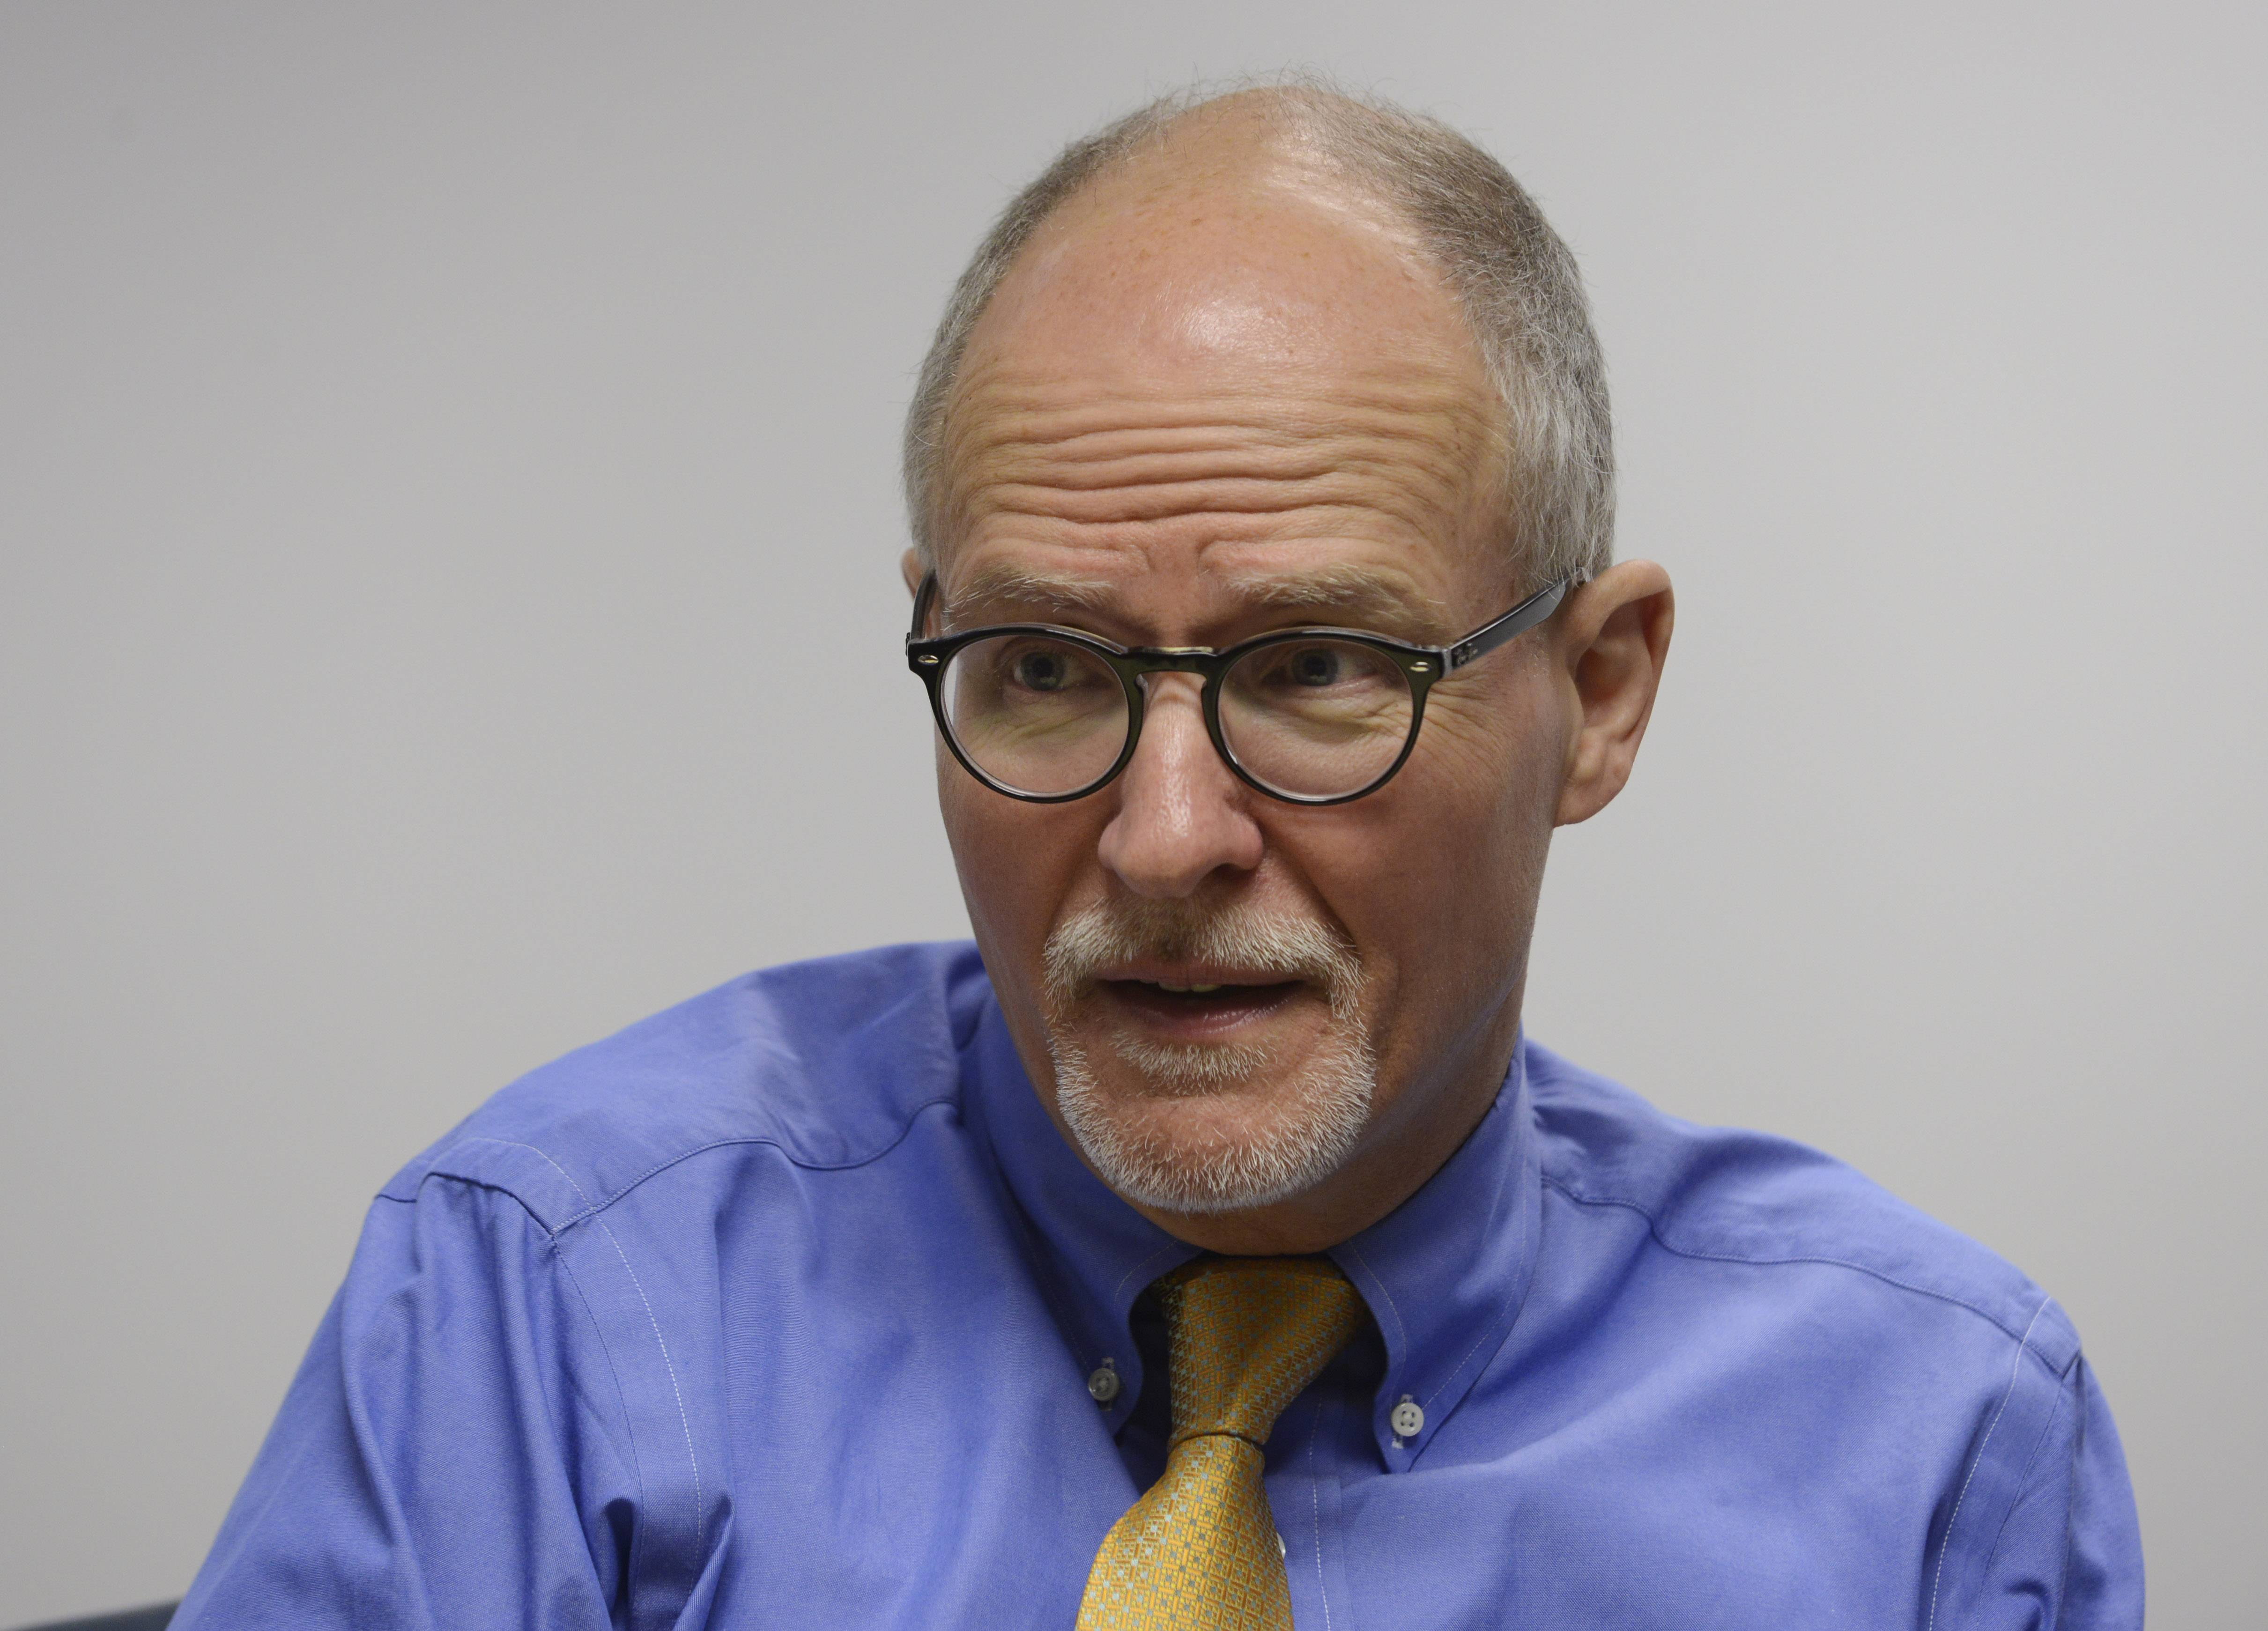 Paul Vallas, Democratic candidate for lieutenant governor, told the Daily Herald editorial board he doesn't support having local schools pay more for teachers' pensions.